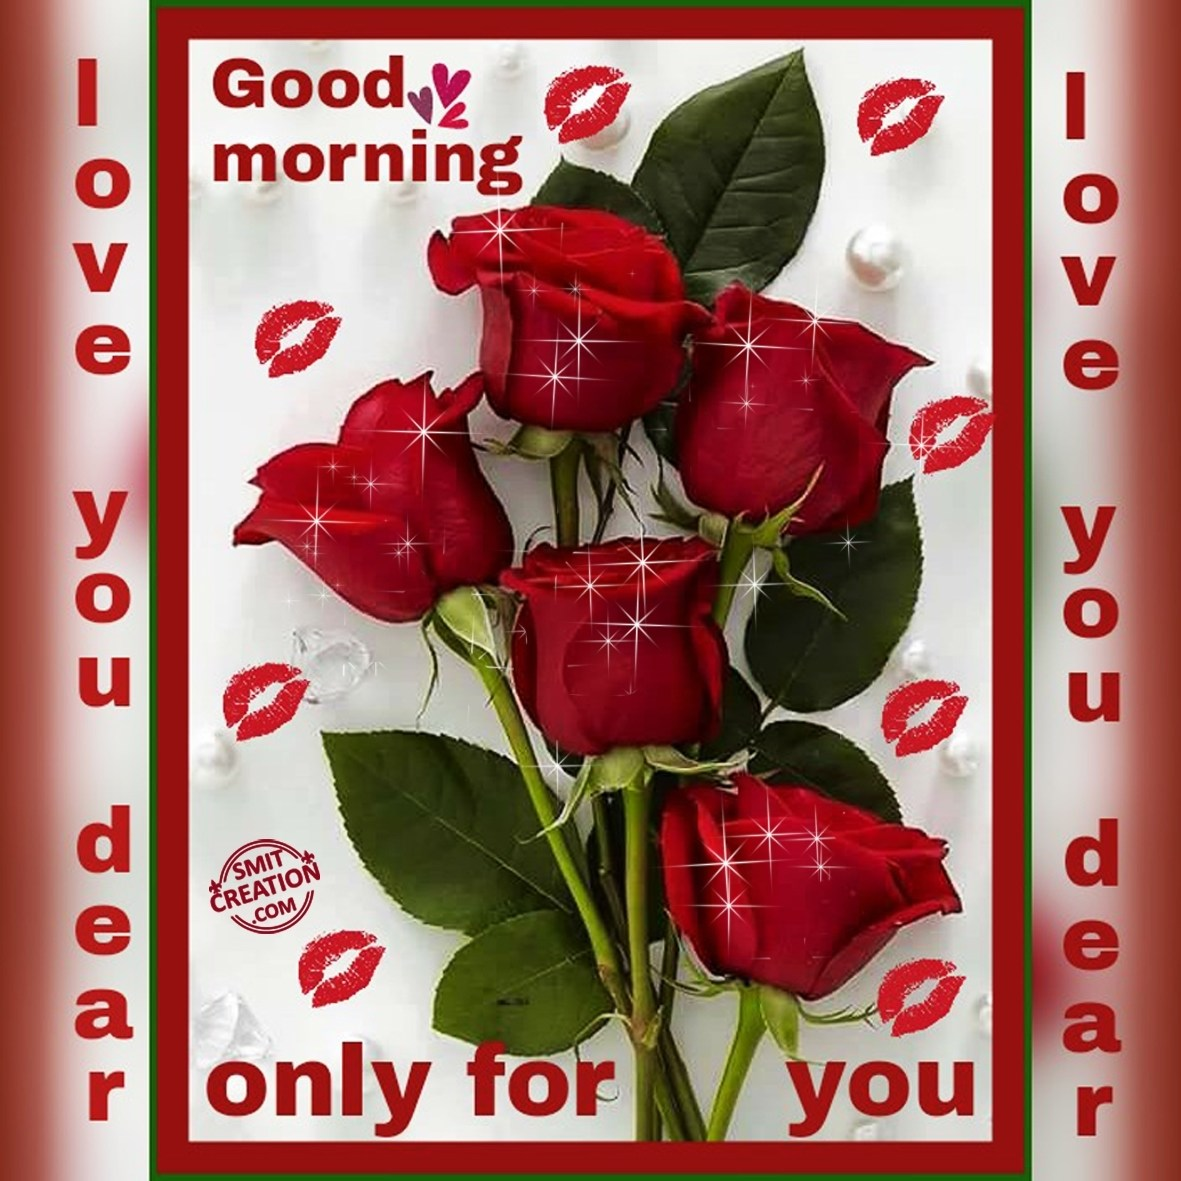 Good Morning My Love Neha : For you pictures and graphics smitcreation